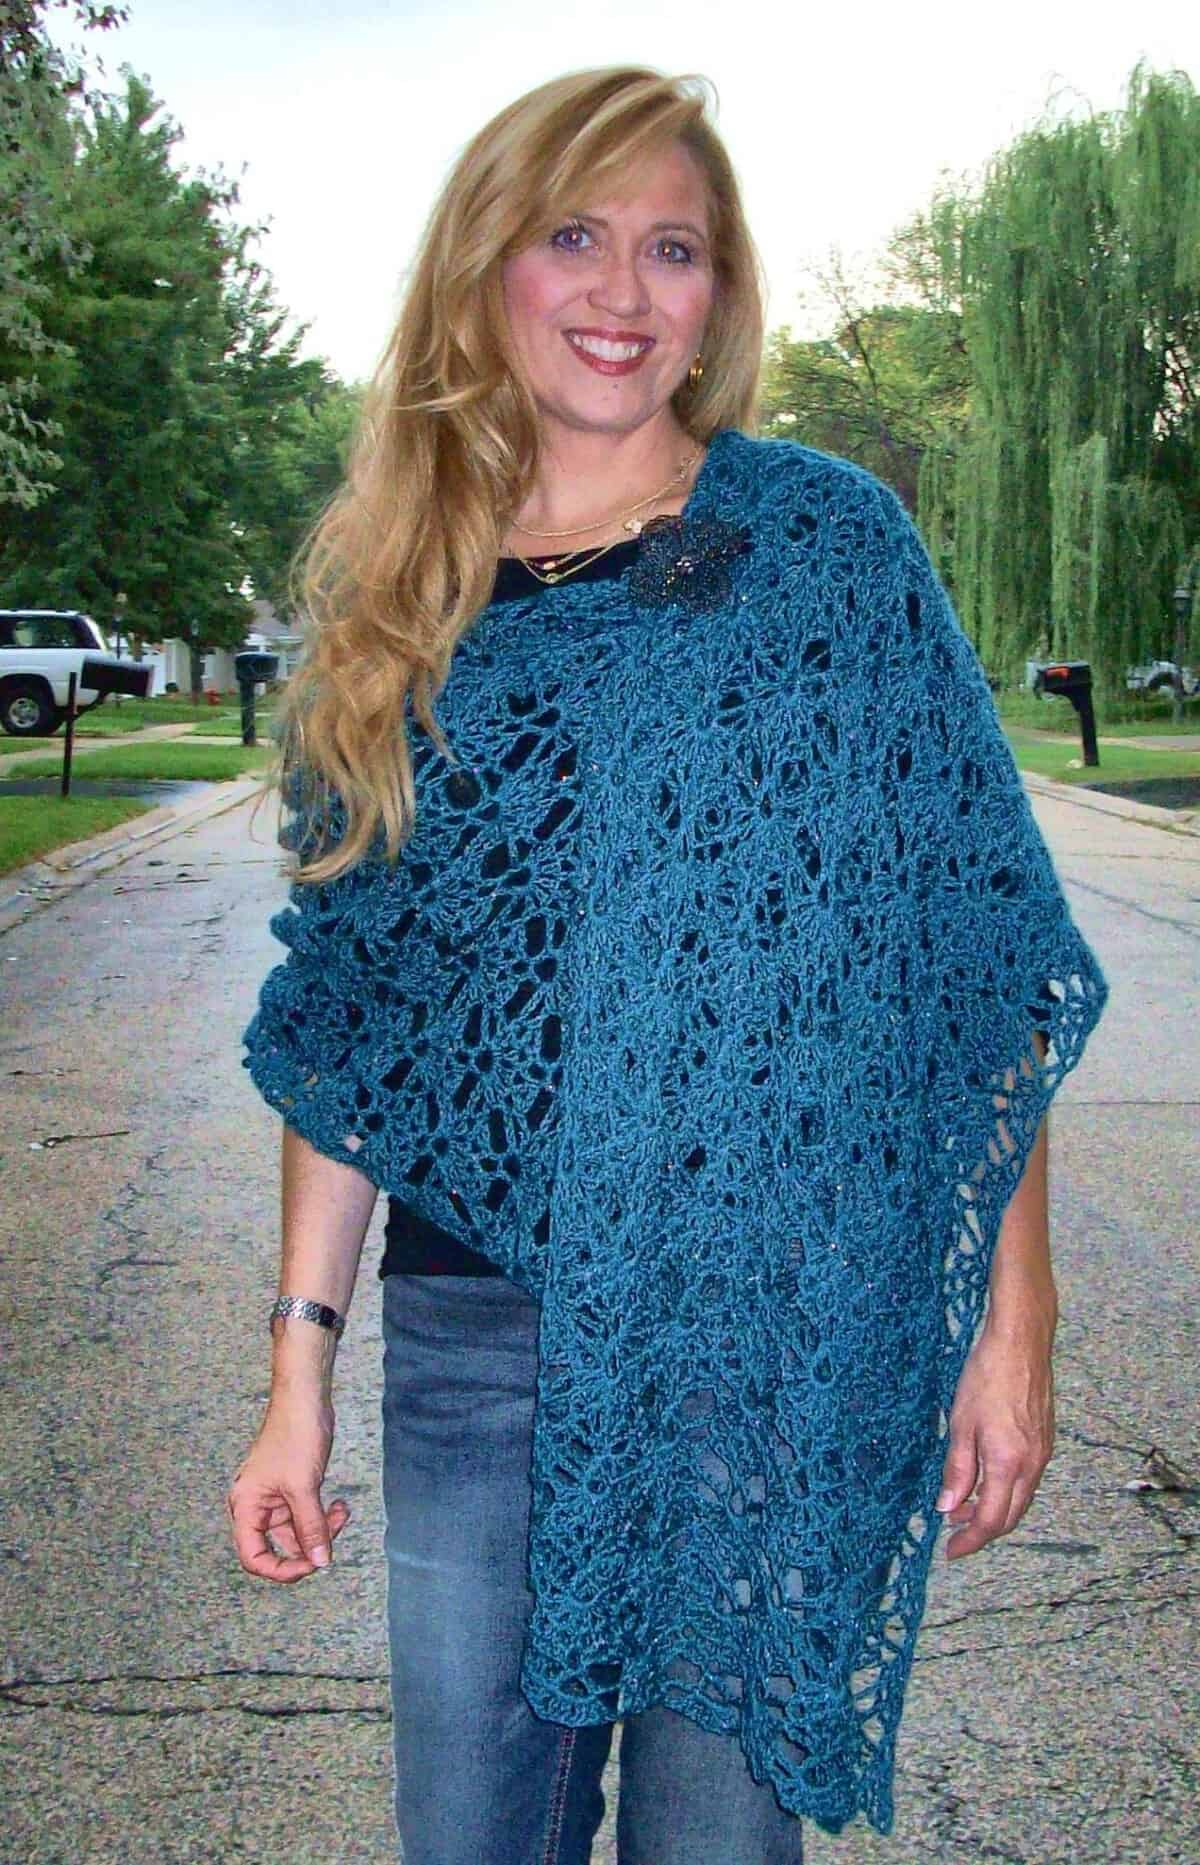 Gemstones_Crocheted_Shawl_Laura_Krzak